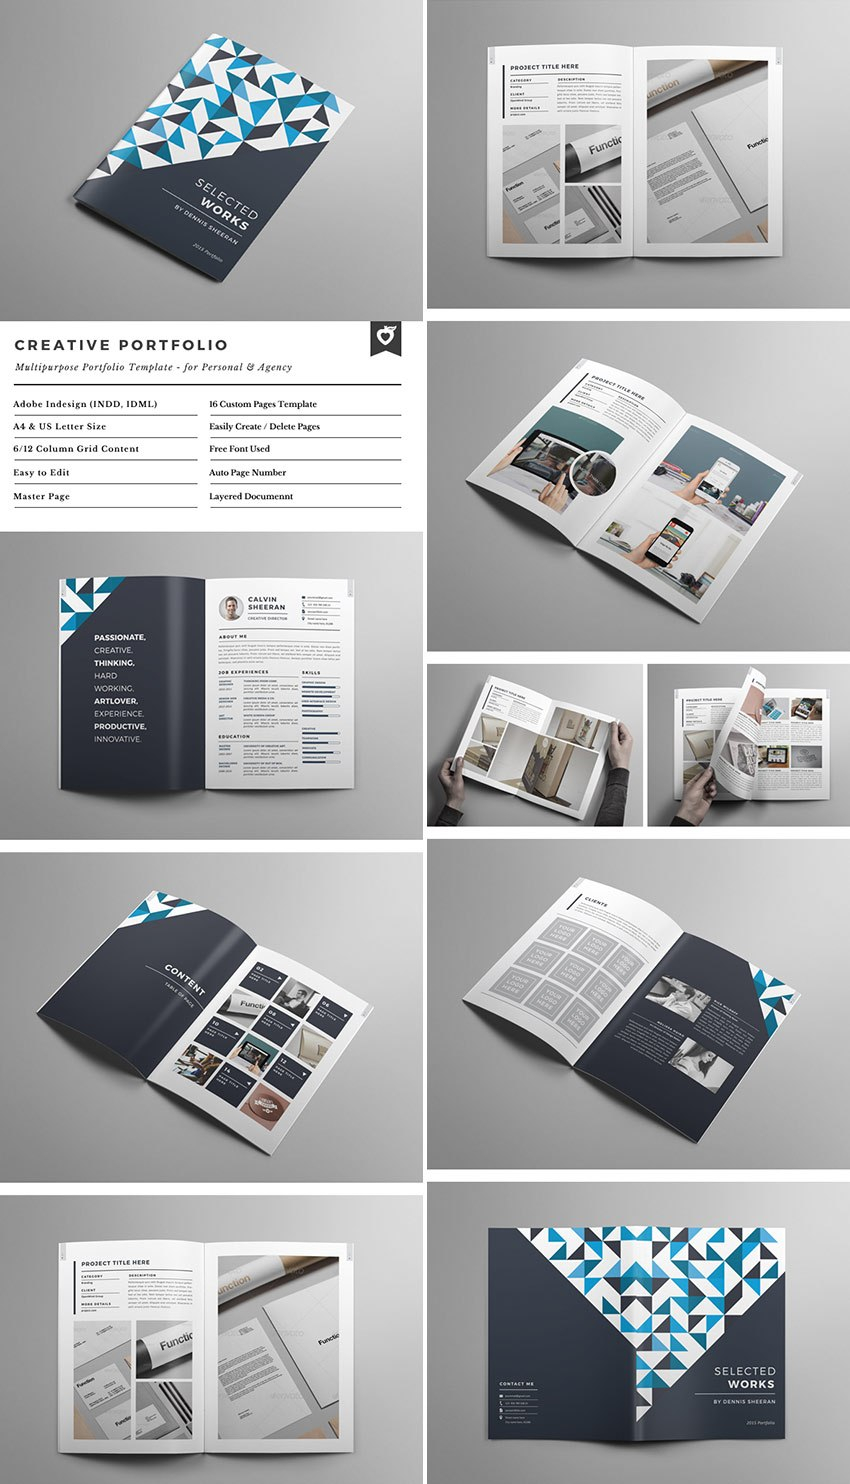 Best Indesign Brochure Templates  Creative Business Marketing Throughout Brochure Template Indesign Free Download